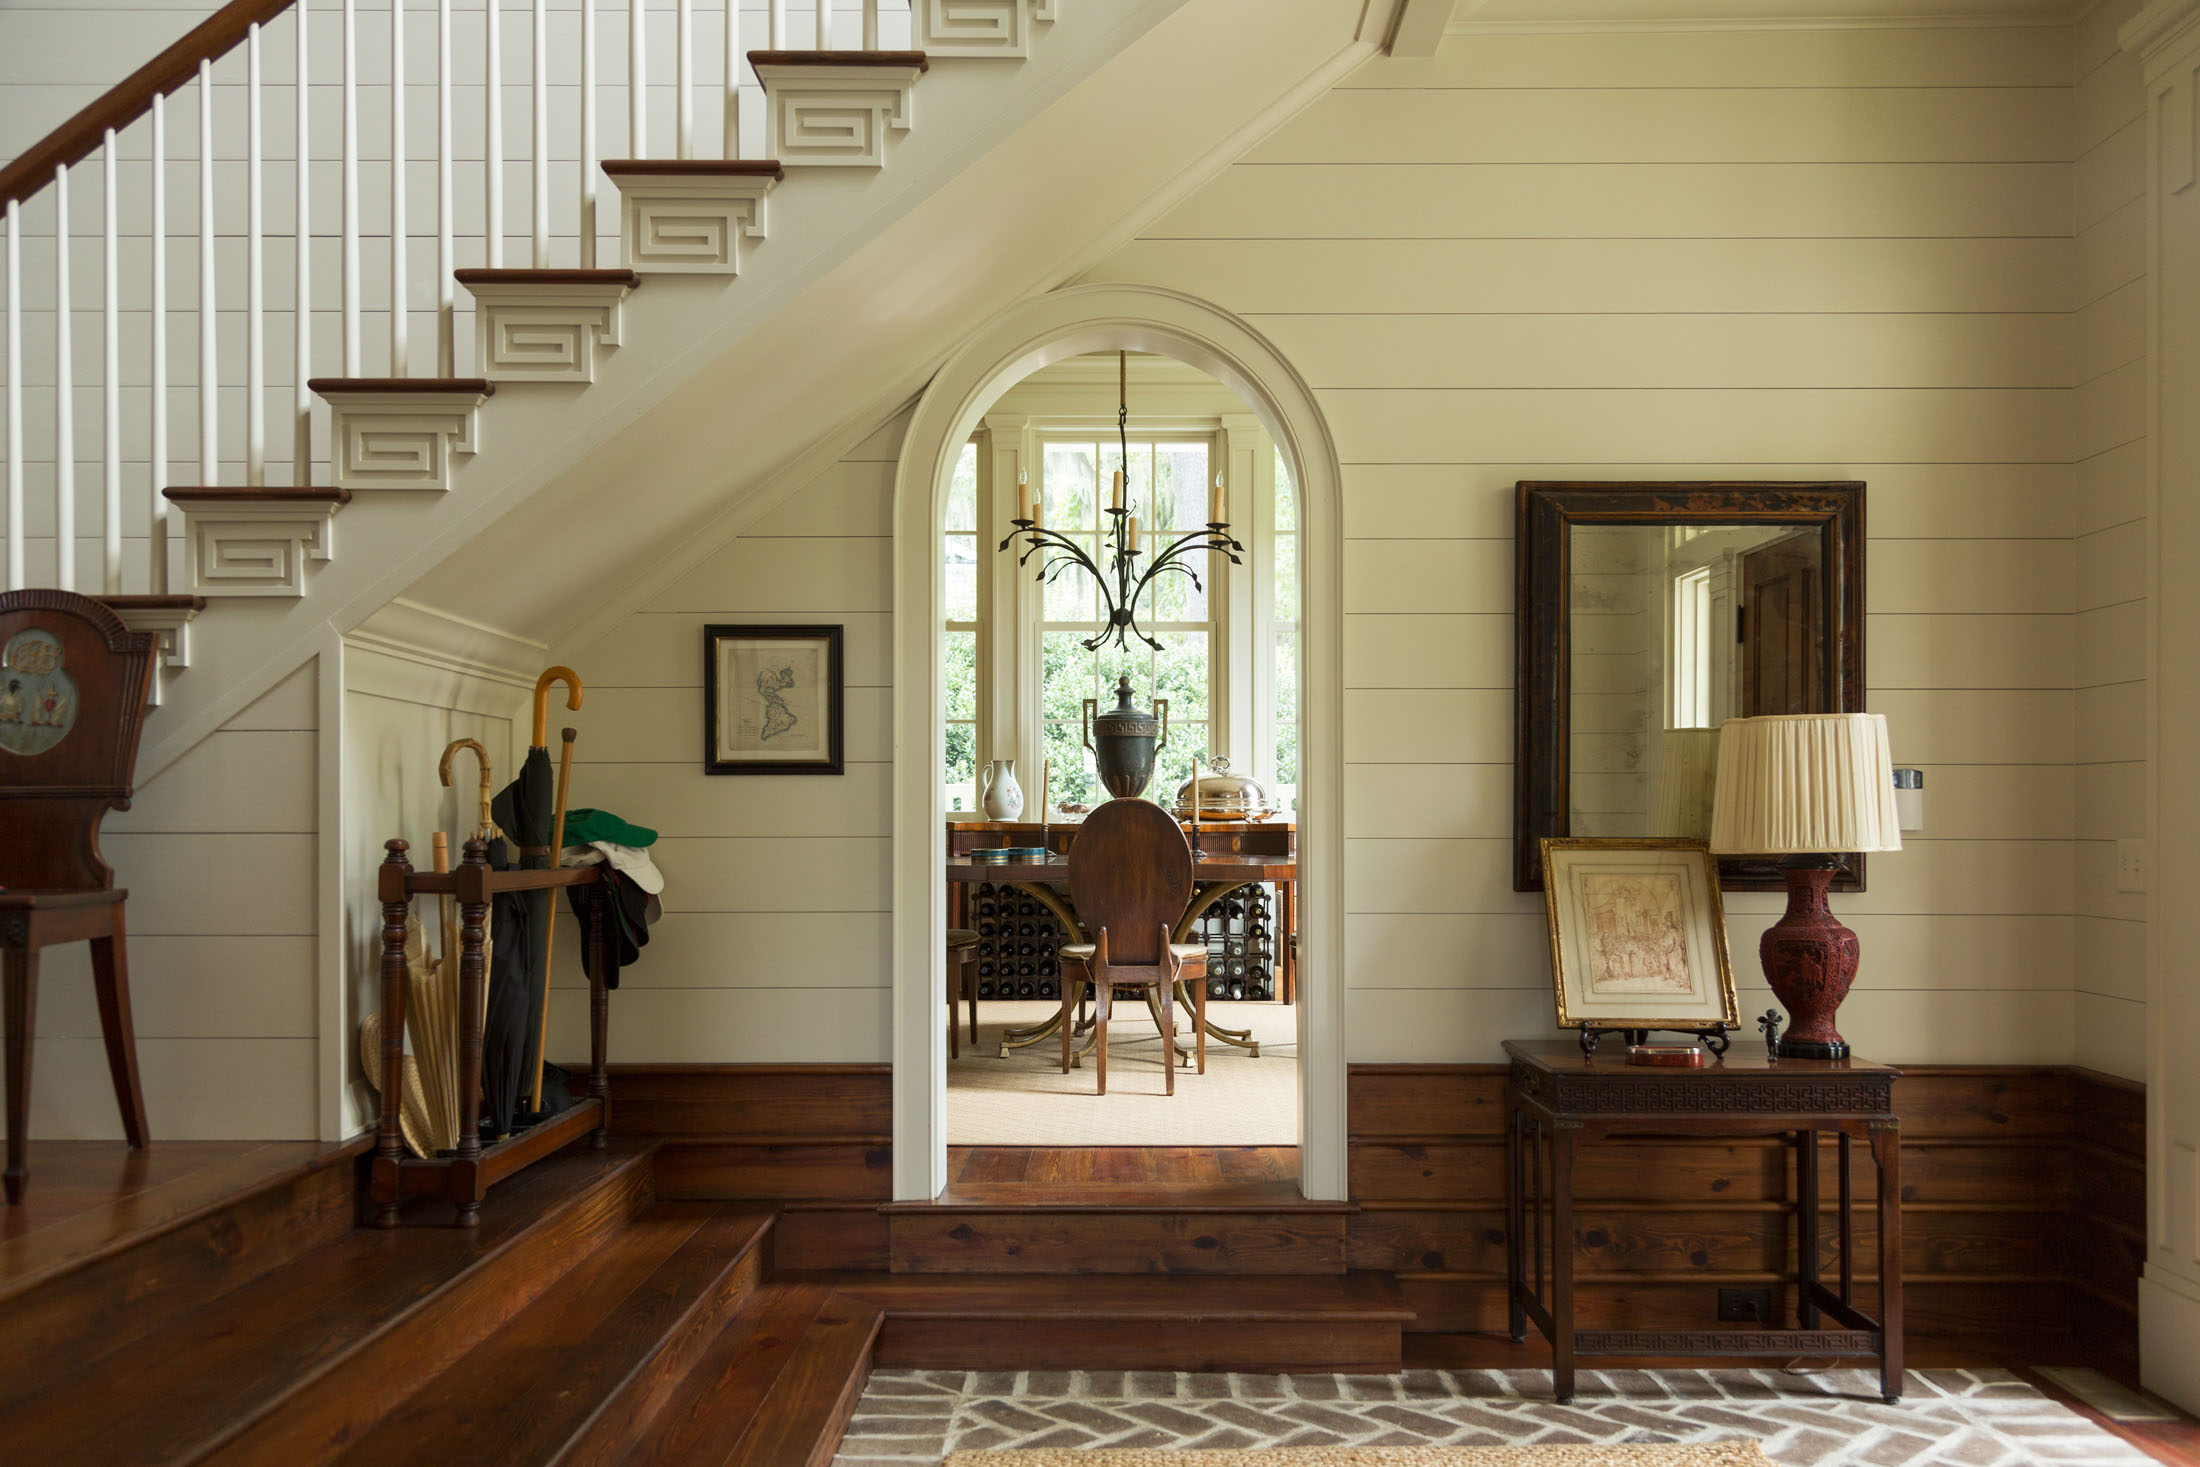 Private Residence  Ford Plantation, Richmond Hill GA  Foutz Construction   View Full Project